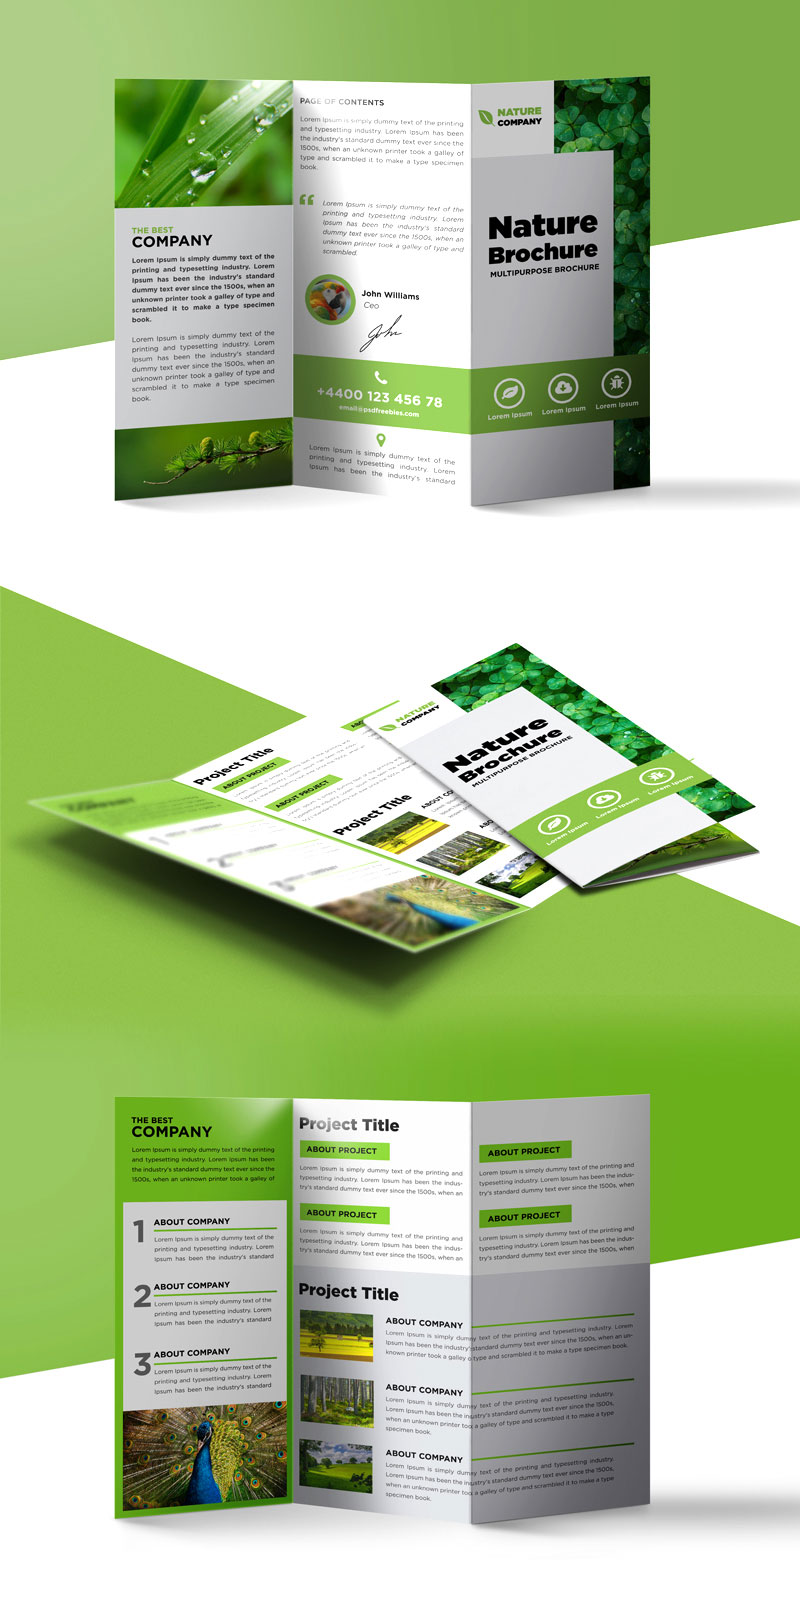 tri fold brochure design templates - nature tri fold brochure template free psd